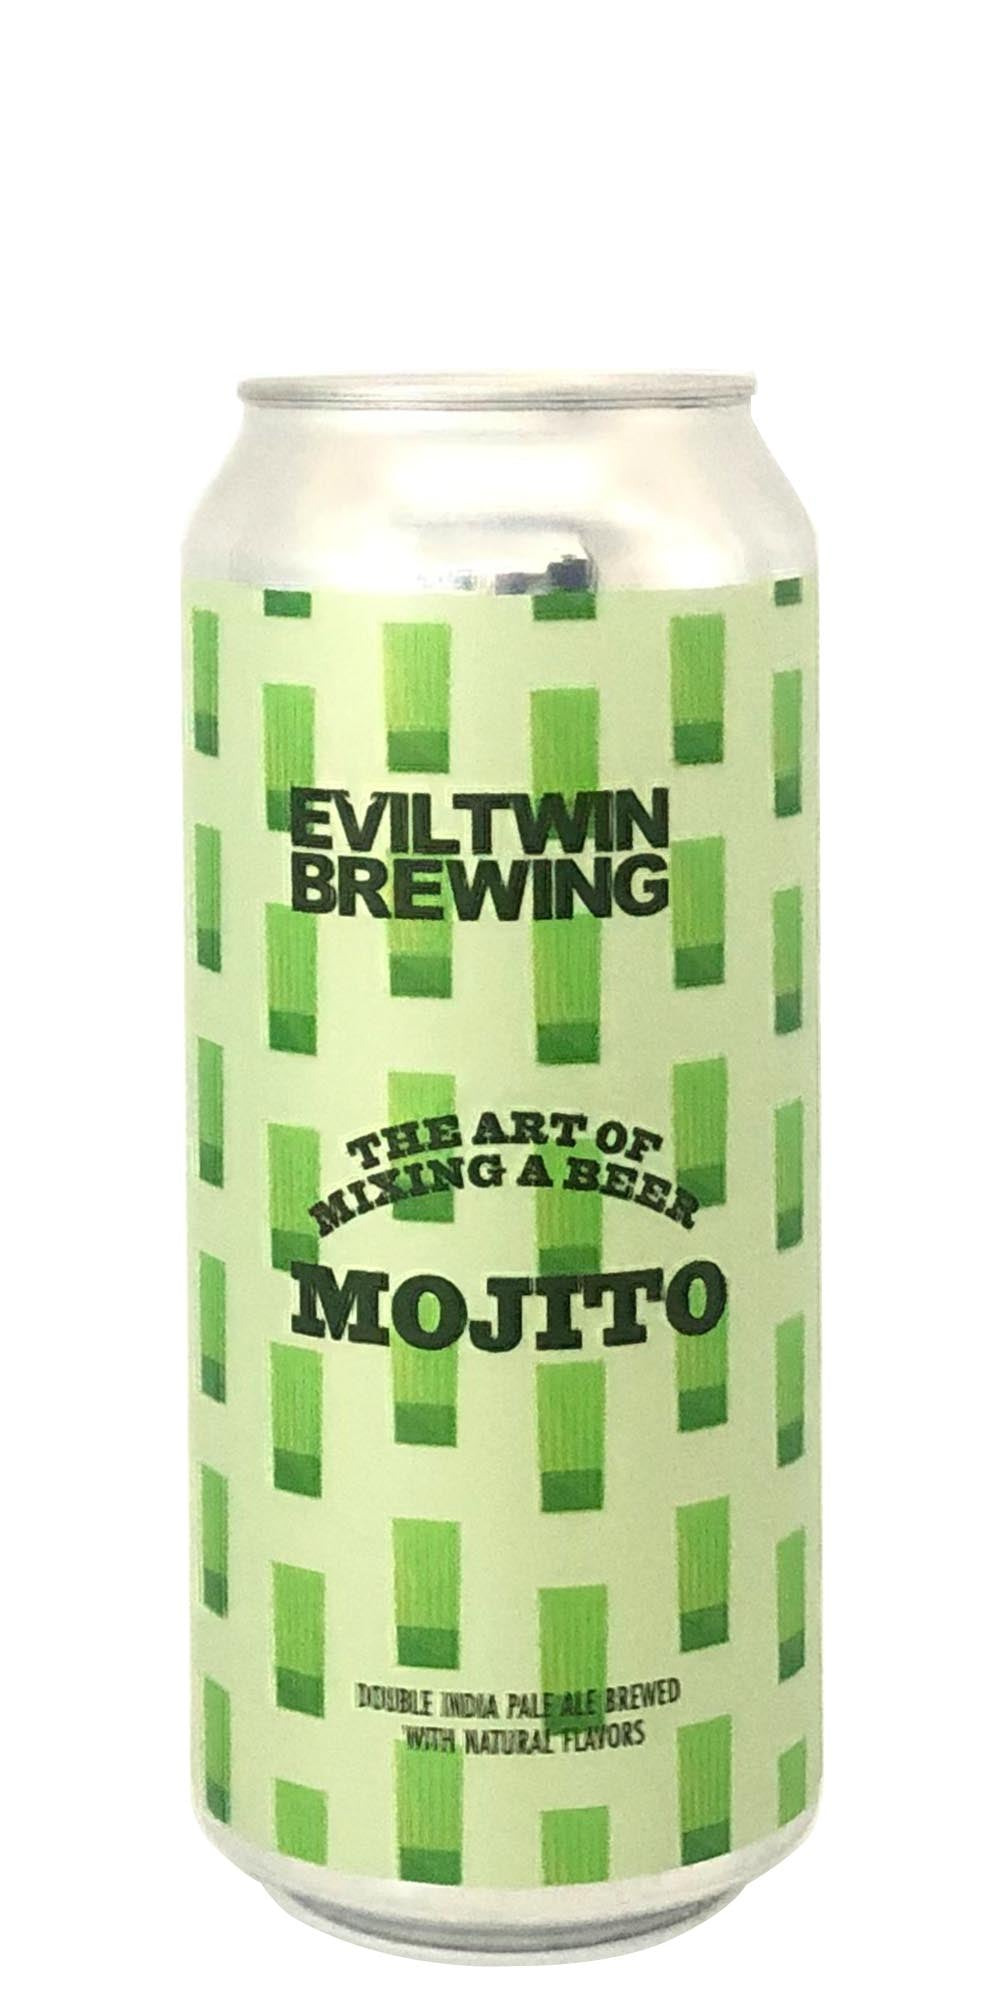 Evil Twin Brewing - The Art Of Mixing A Beer Mojito - 473ml - Drikbeer - Order Craft Beer Online